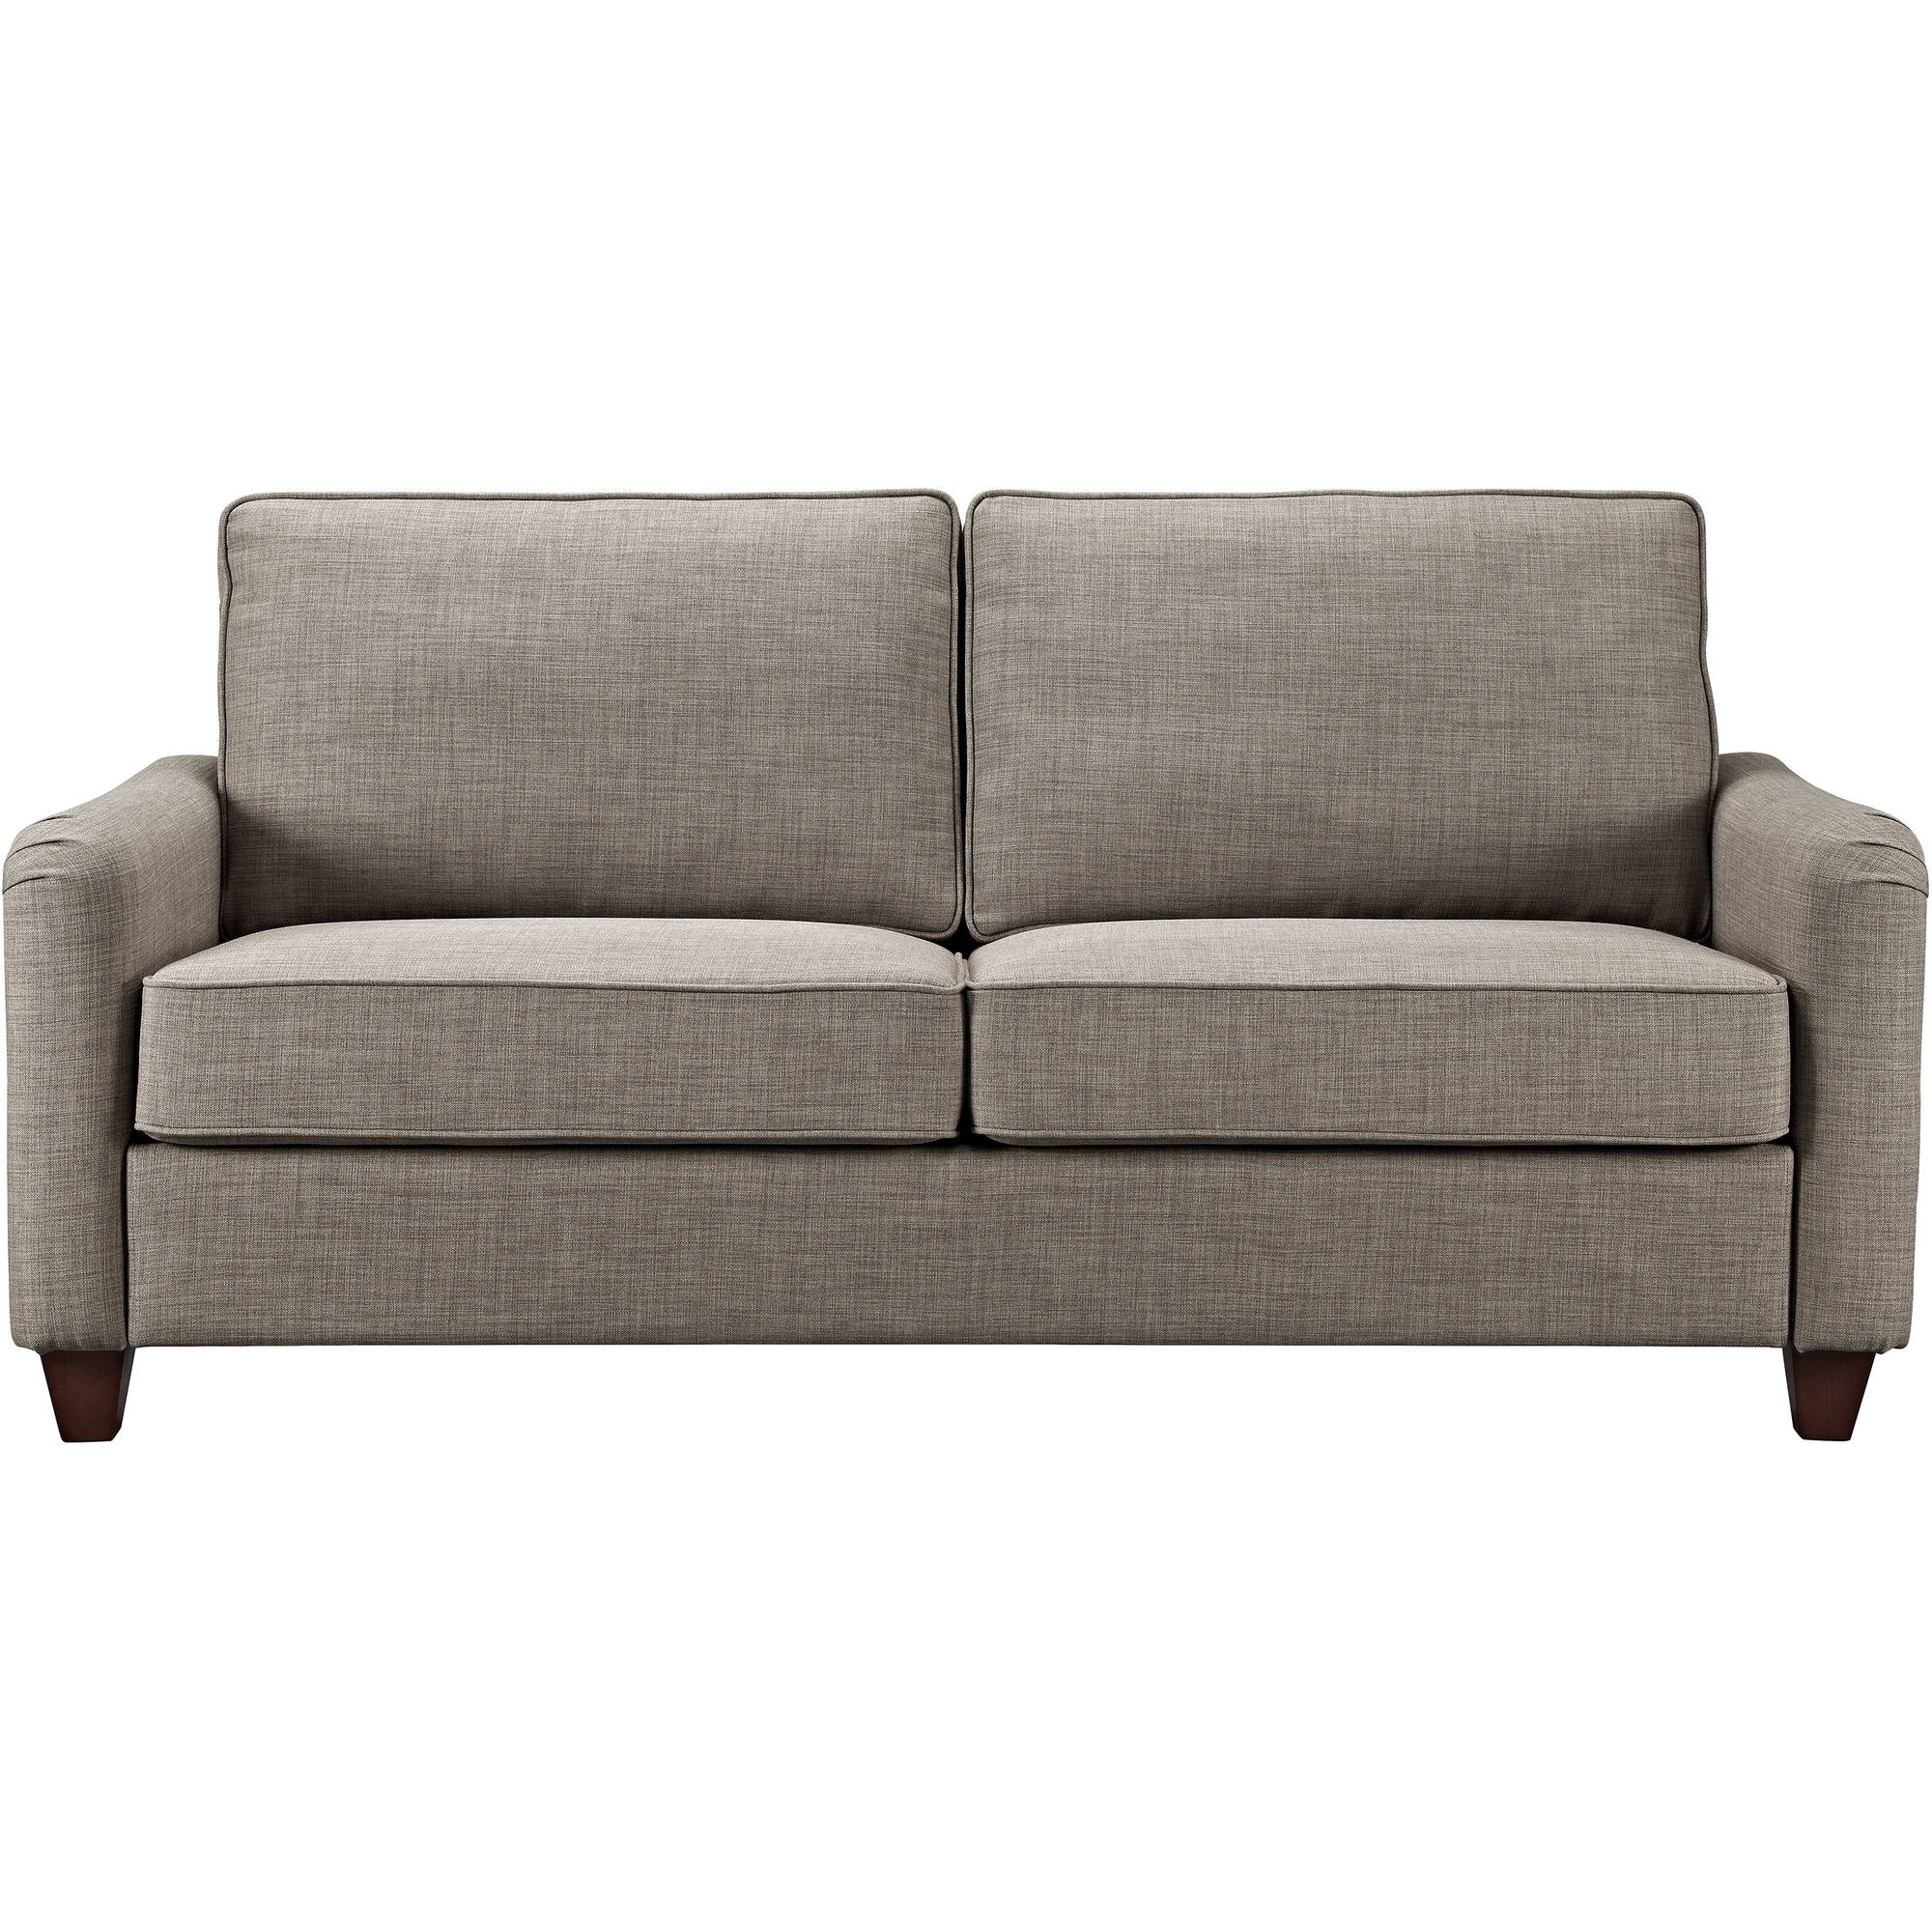 Living Room Furniture Pertaining To Preferred Sofa Chairs For Living Room (View 6 of 15)